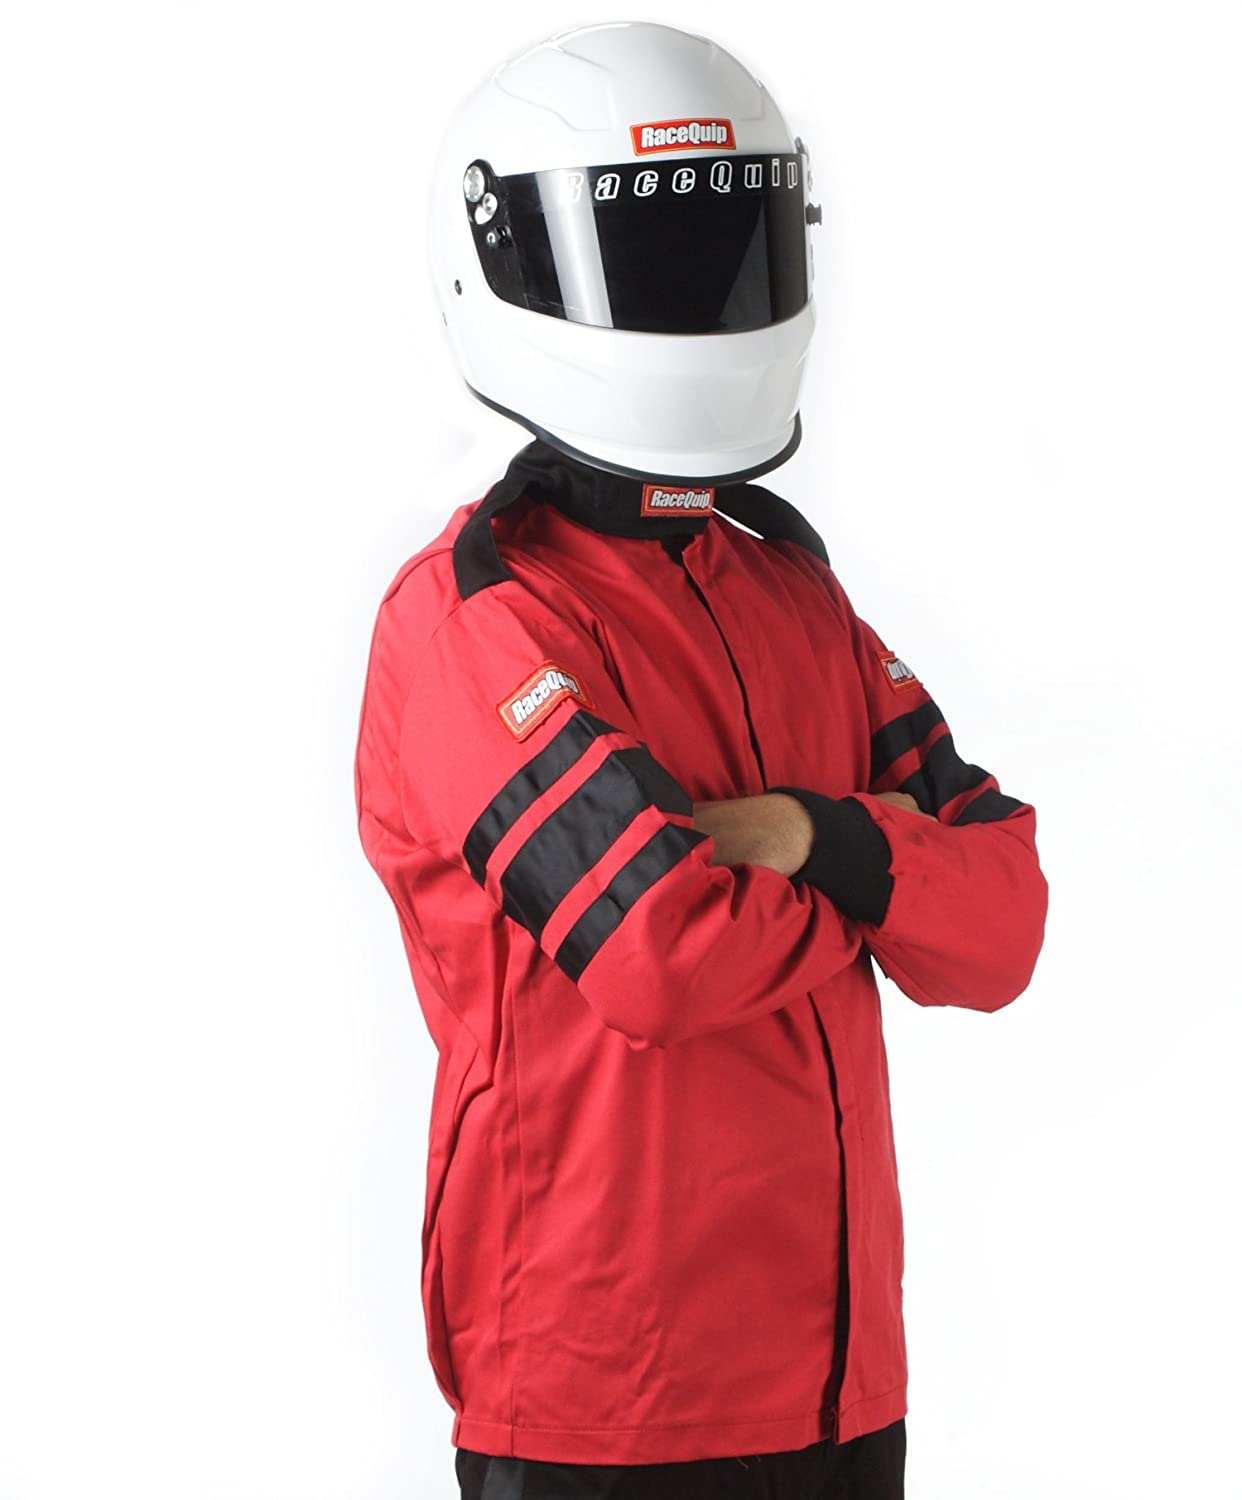 RaceQuip 111018 111 Series XXX-Large Red SFI 3.2A//1 Single Layer Driving Jacket